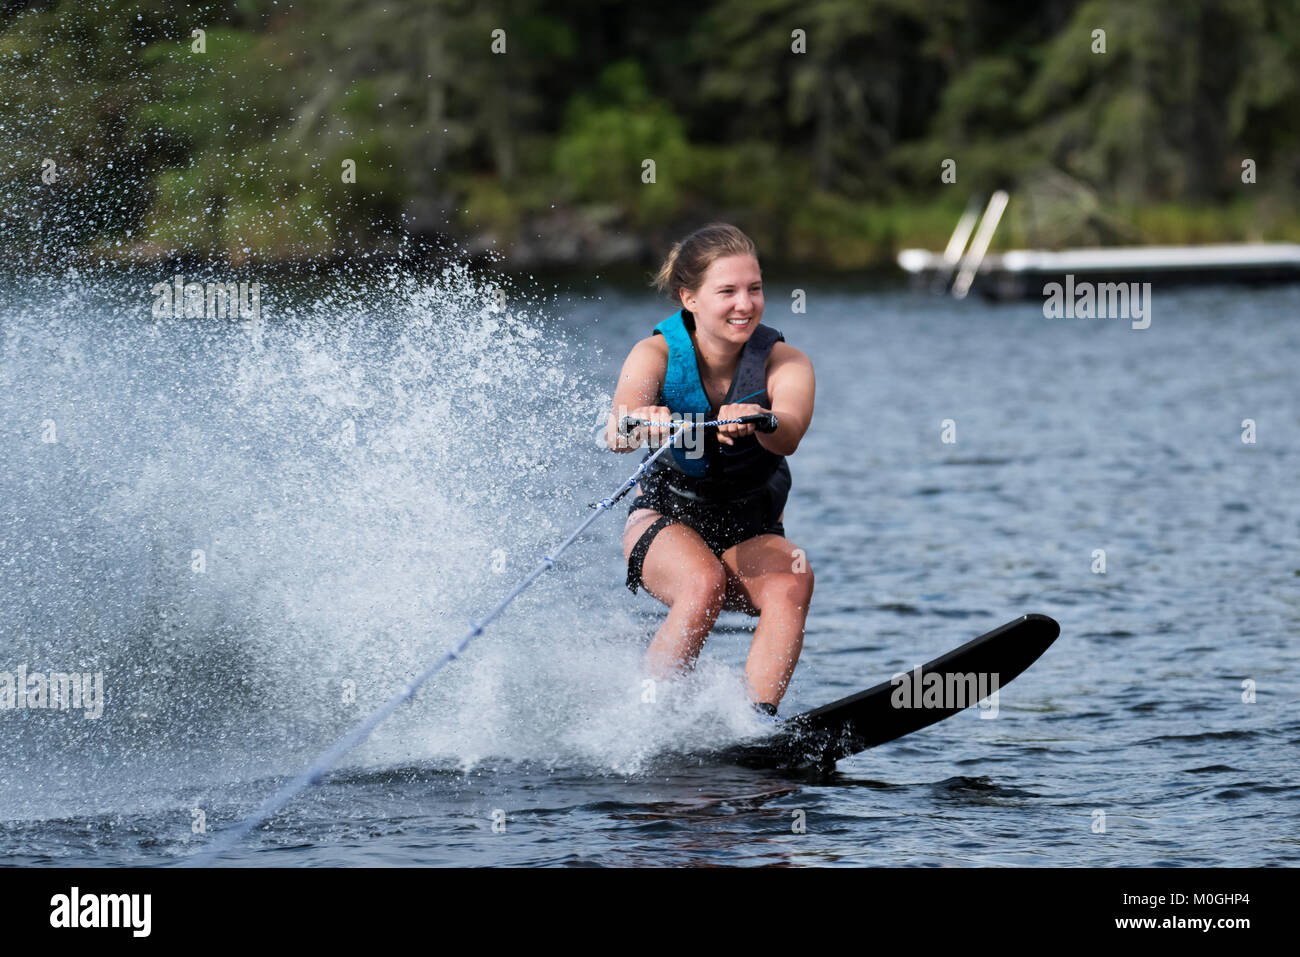 A young woman wakeboarding behind a boat on a lake; Lake of the Woods, Ontario, Canada - Stock Image